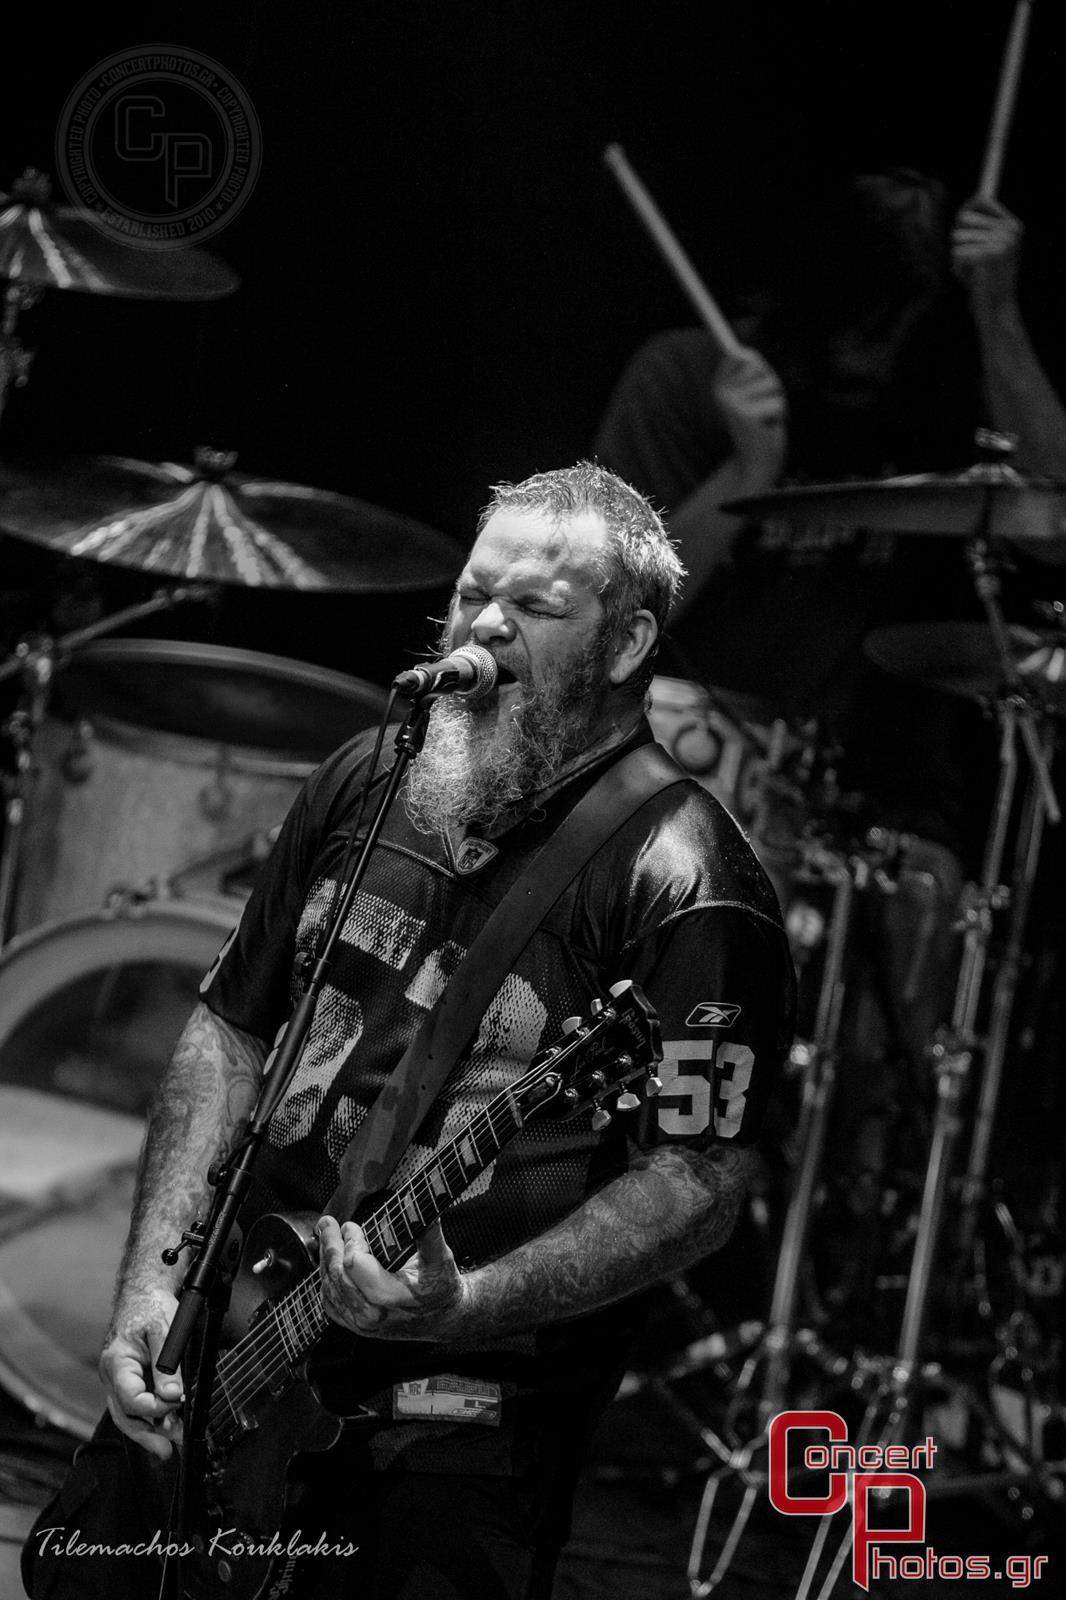 Neurosis-Neurosis photographer:  - concertphotos_20140707_23_56_37